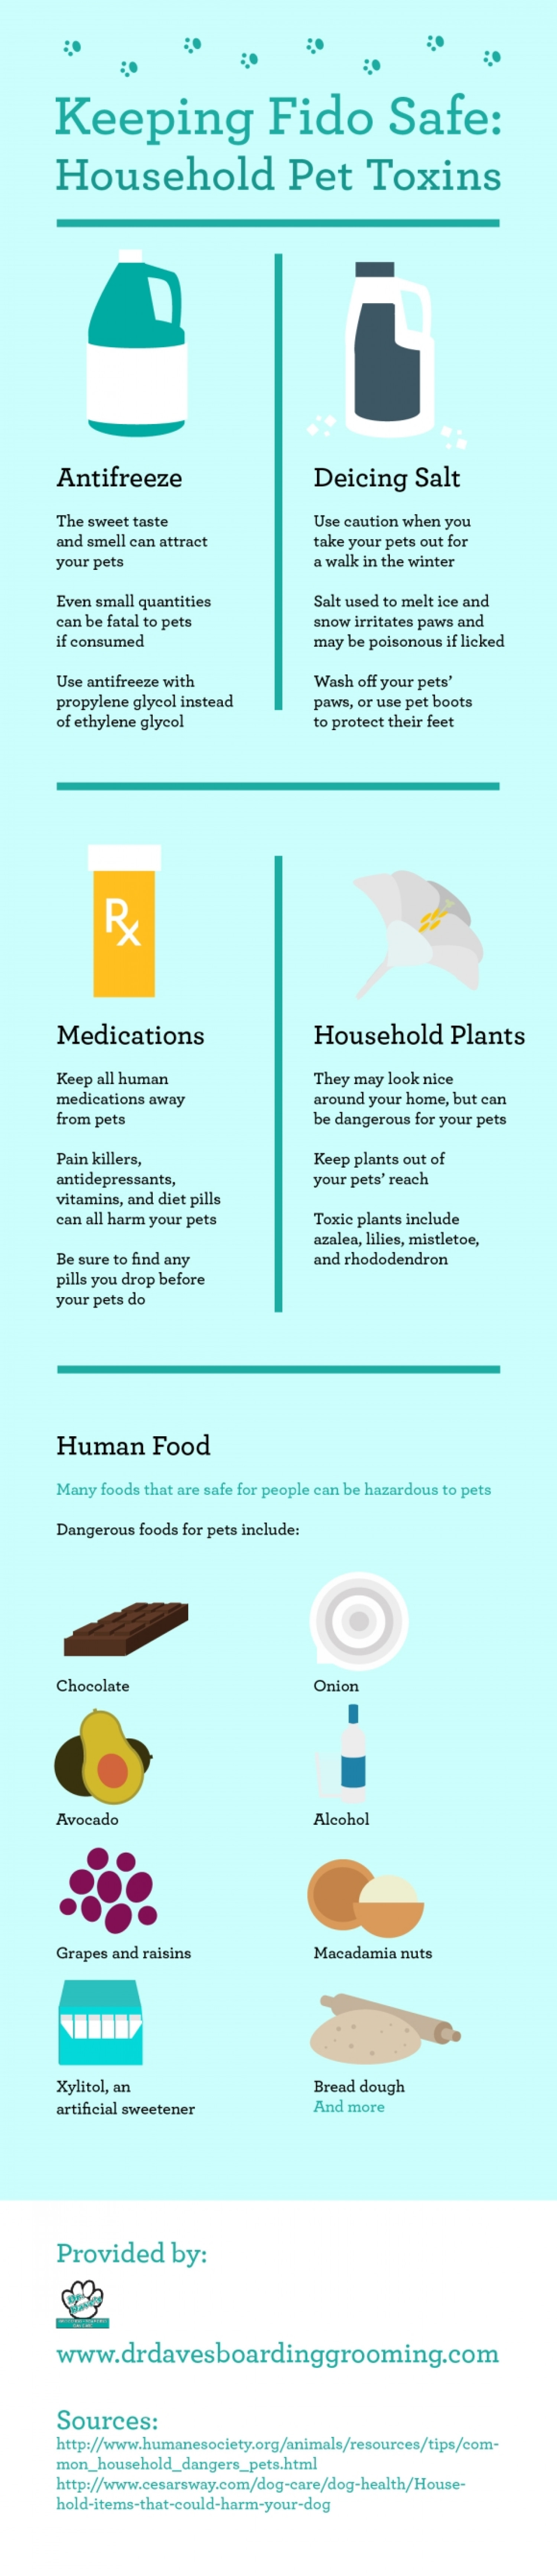 Keeping Fido Safe: Household Pet Toxins Infographic